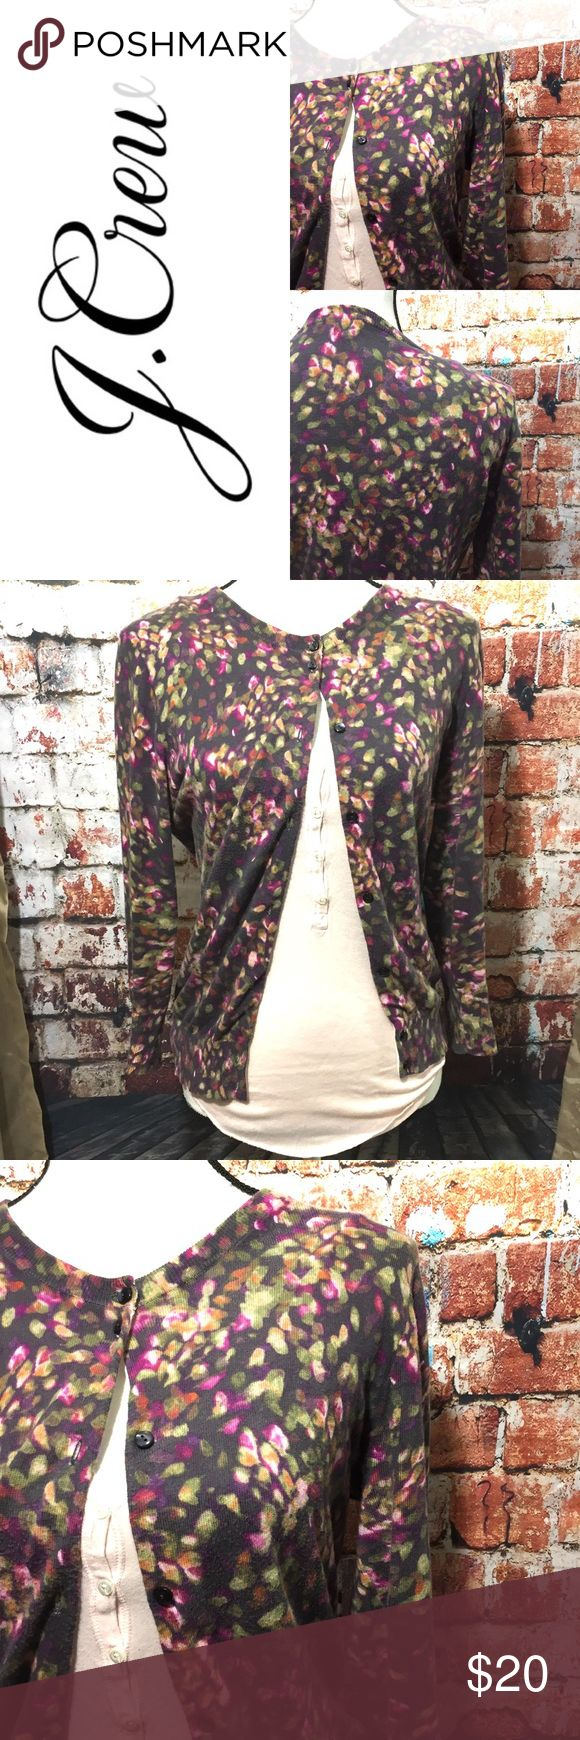 {J. Crew} floral cardigan J. Crew factory gorgeous floral cardigan. Size Large. Pair with your favorite skinny jeans, gray pumps and a cute T. Great used condition. Location R-2. J. Crew Factory Sweaters Cardigans